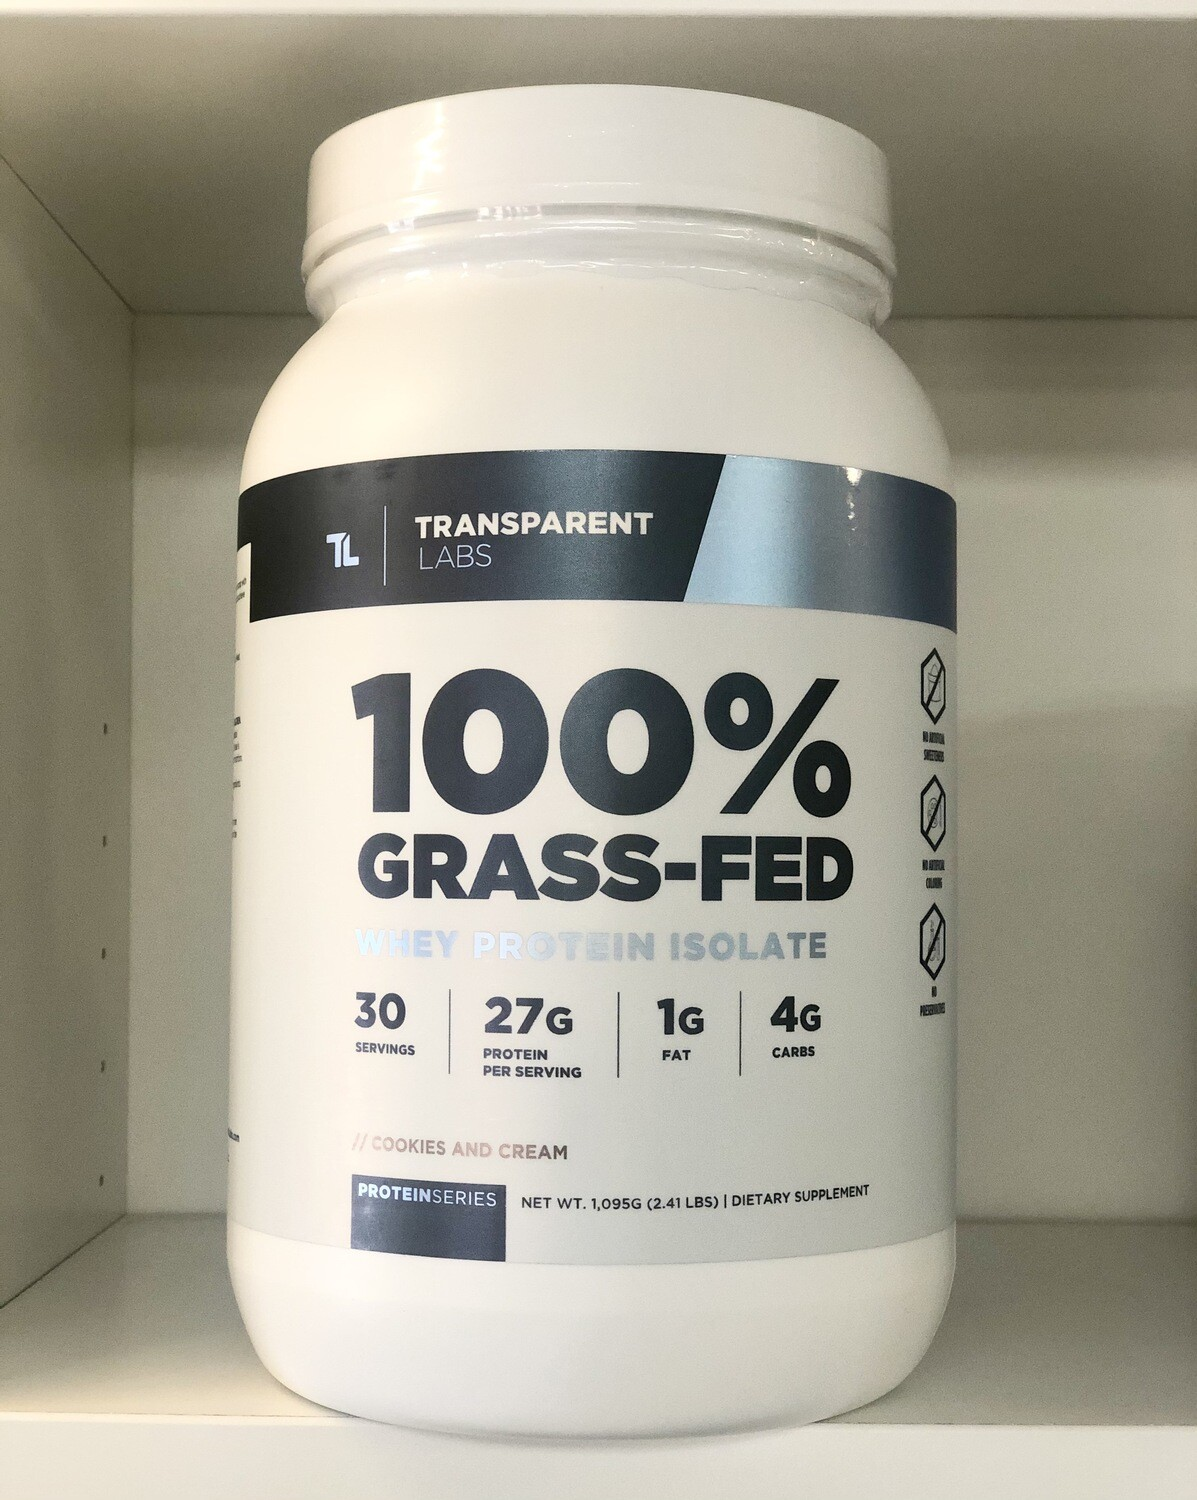 Transparent Labs 100% Grass-Fed Protein